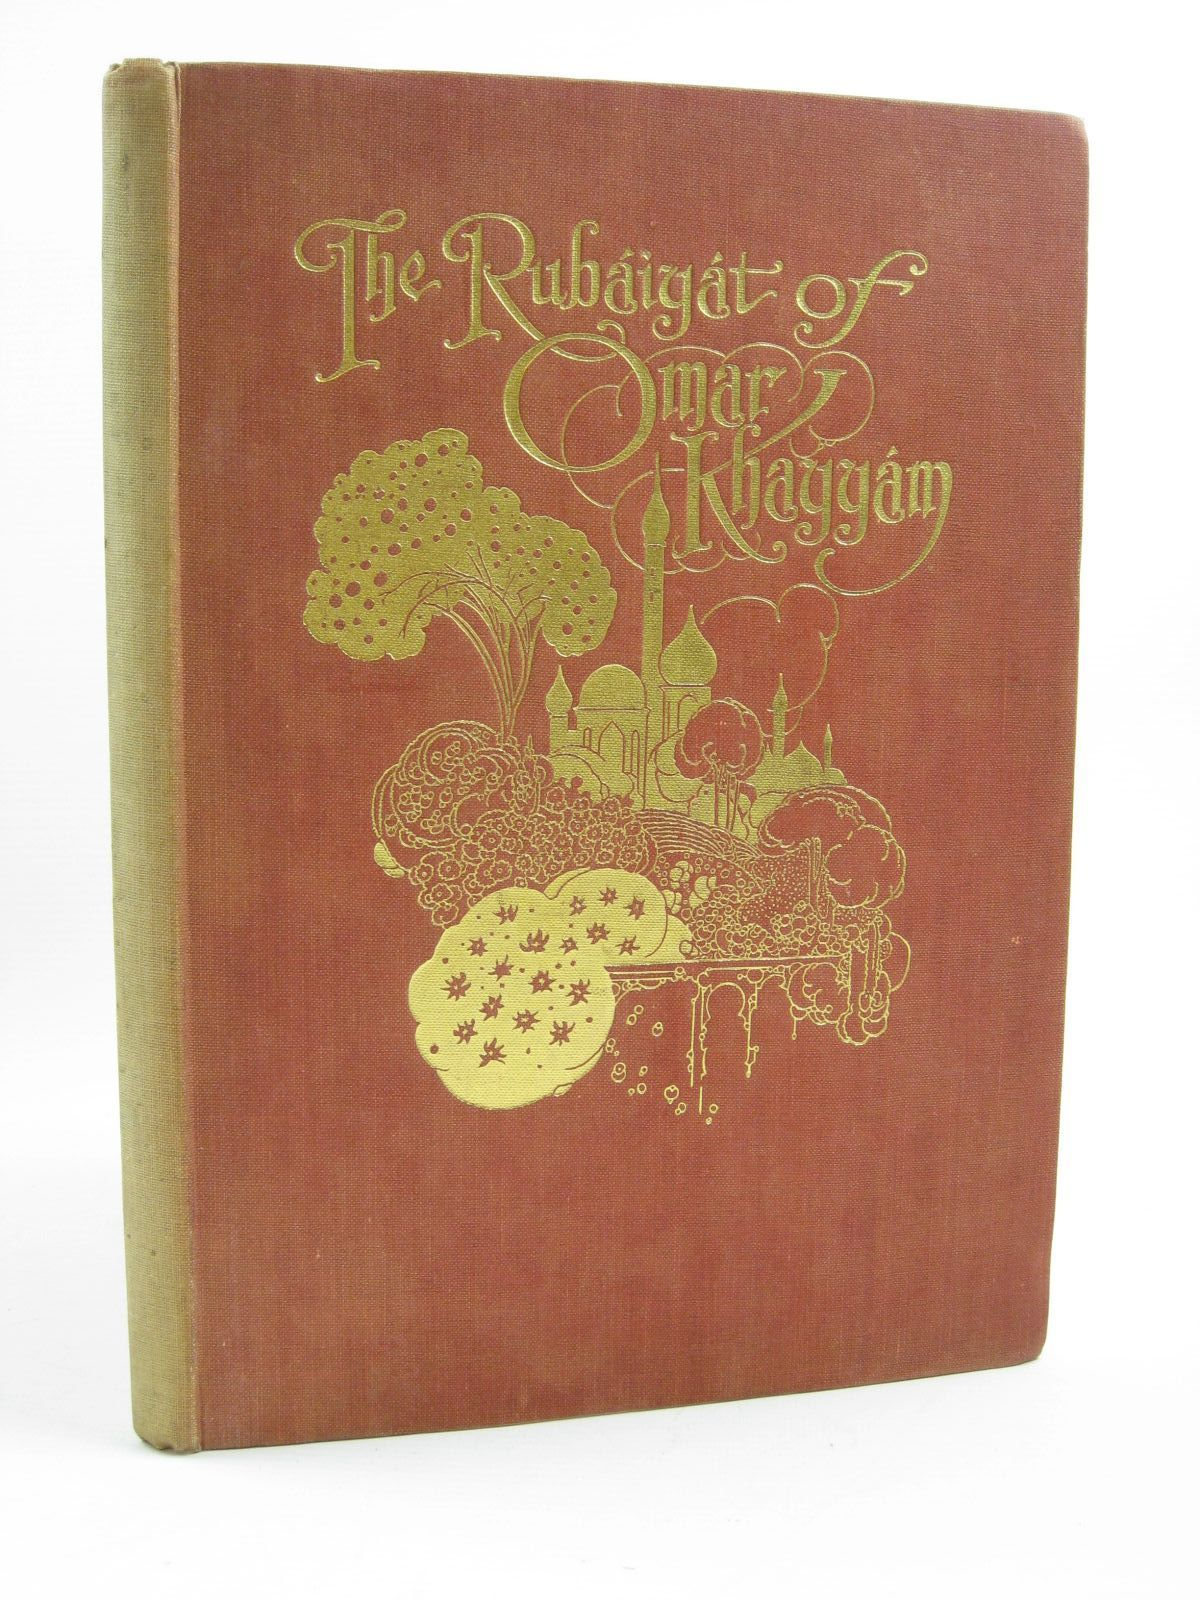 Photo of THE RUBAIYAT OF OMAR KHAYYAM written by Khayyam, Omar Fitzgerald, Edward Housman, Laurence illustrated by Robinson, Charles published by Collins (STOCK CODE: 1406743)  for sale by Stella & Rose's Books